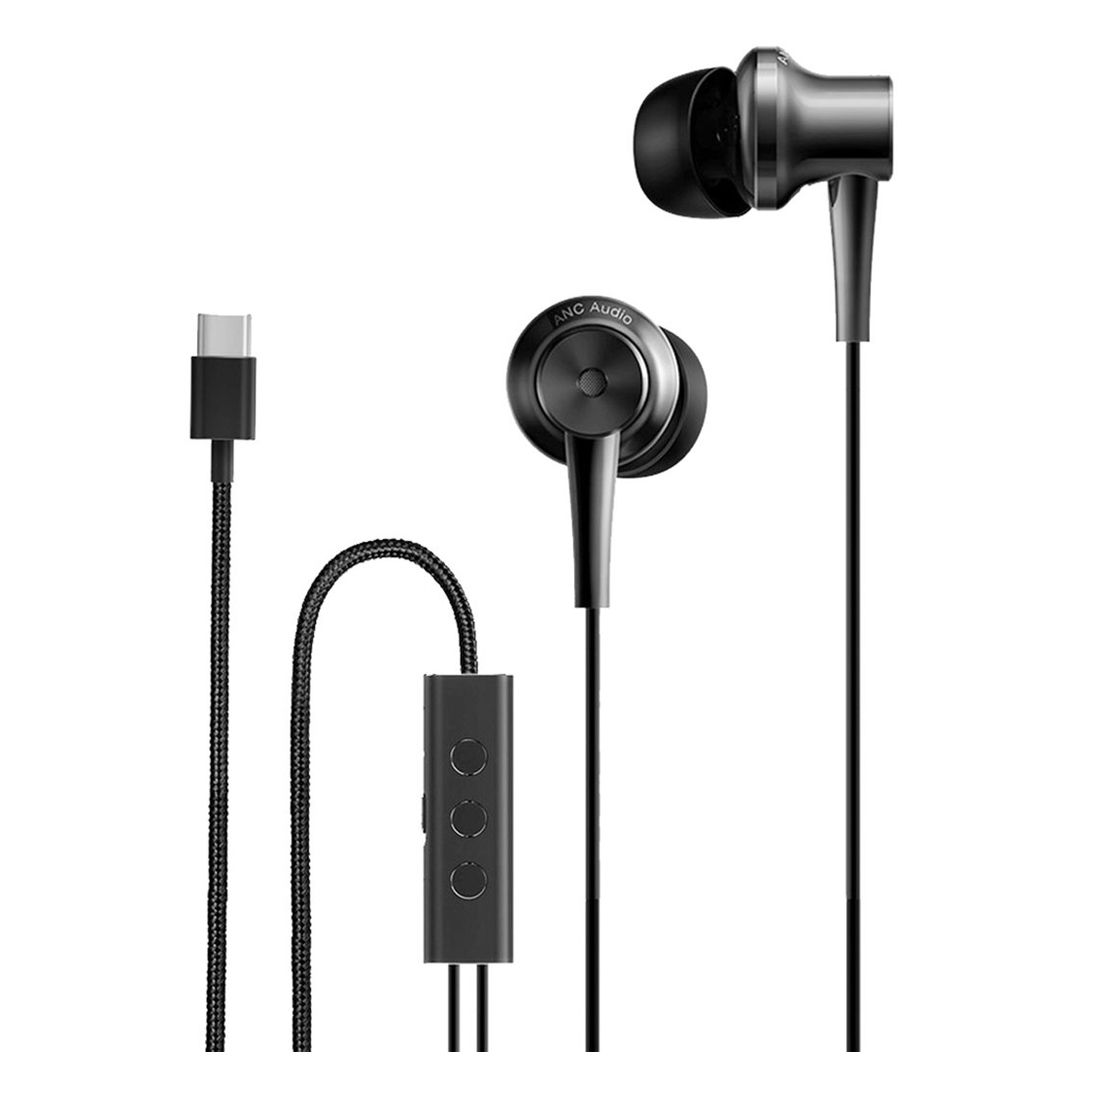 Xiaomi Mi Noise Cancelling Type-C Earphones - Black